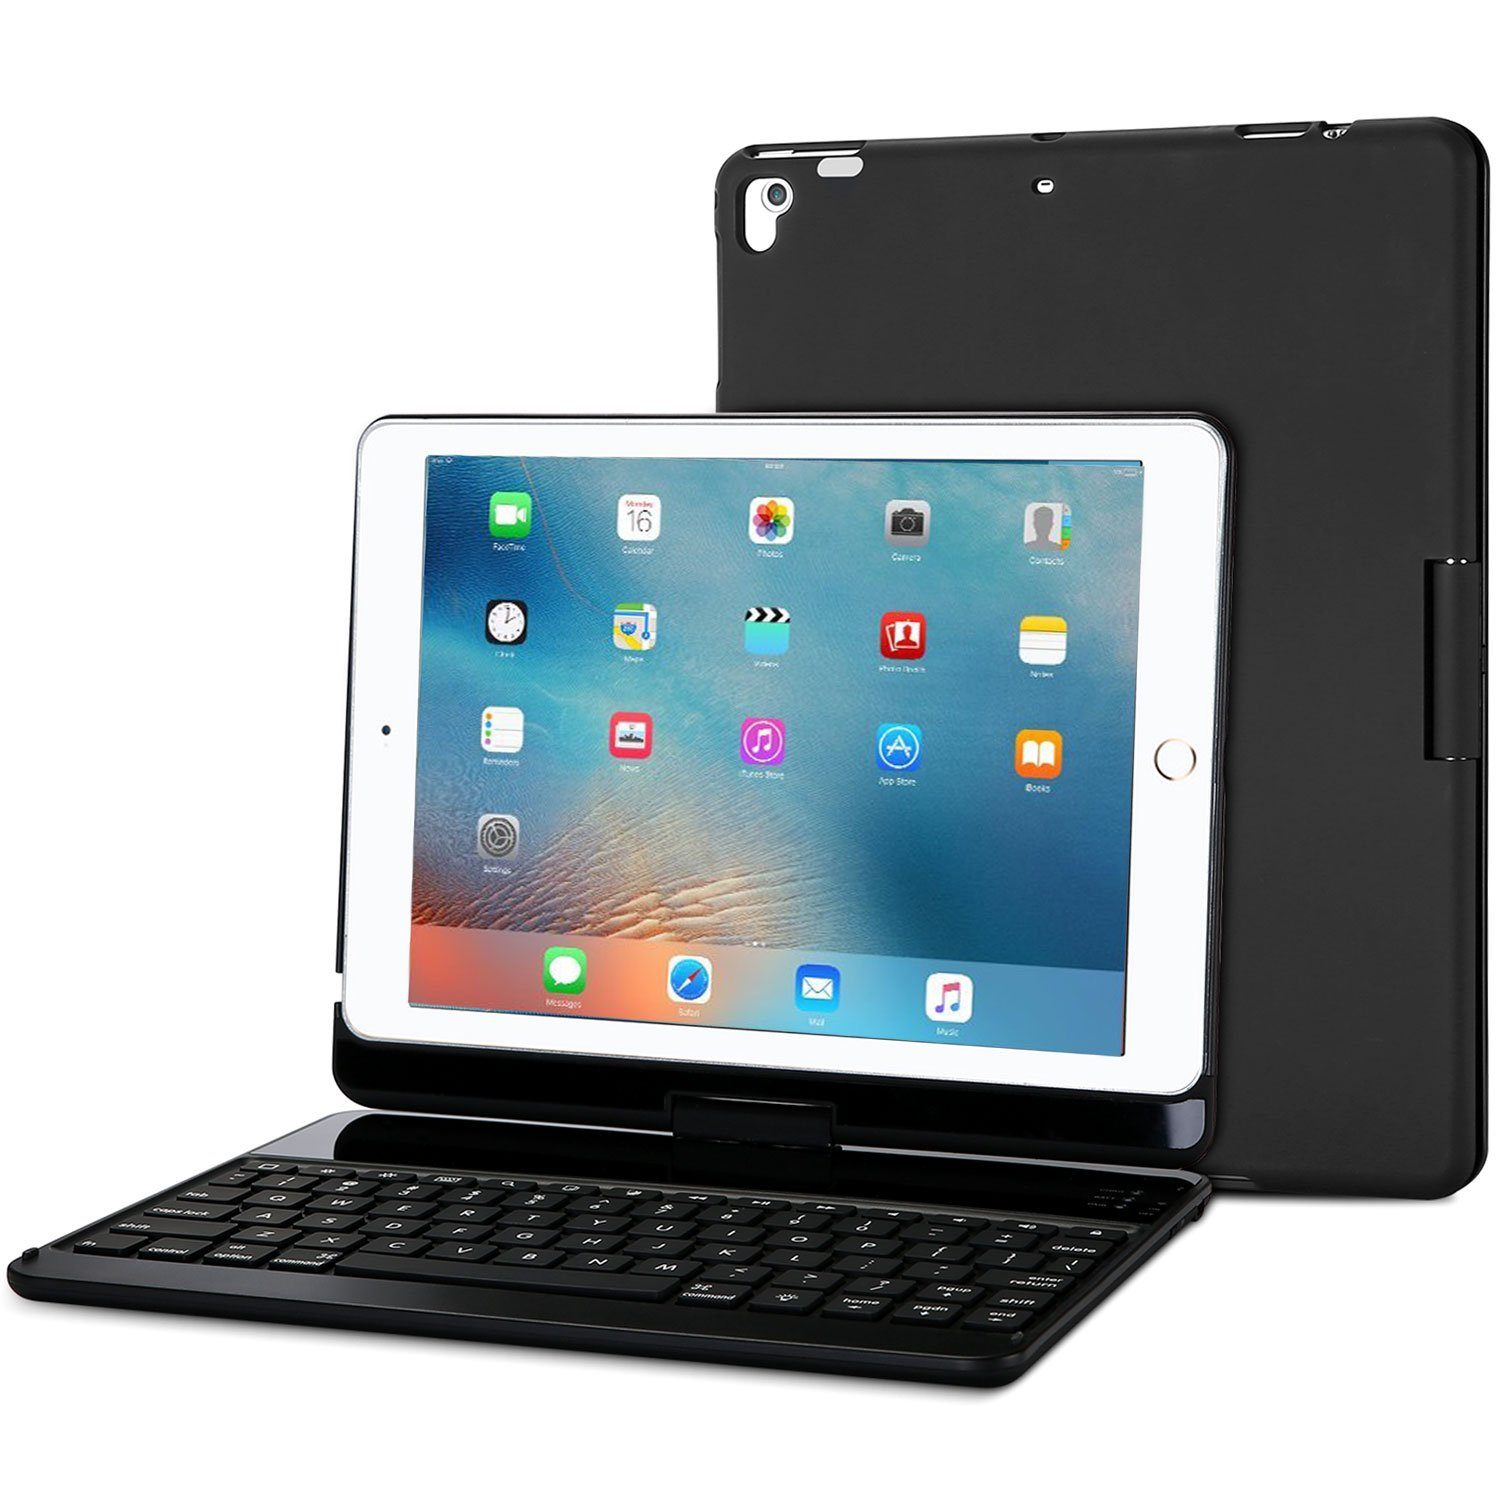 ProCase iPad 9.7 2018/2017 Keyboard Case - 360 Degree Rotation Swivel Cover Case with Wireless Keyboard for Apple iPad 9.7 Inch, Also Fit iPad Air 4328739461